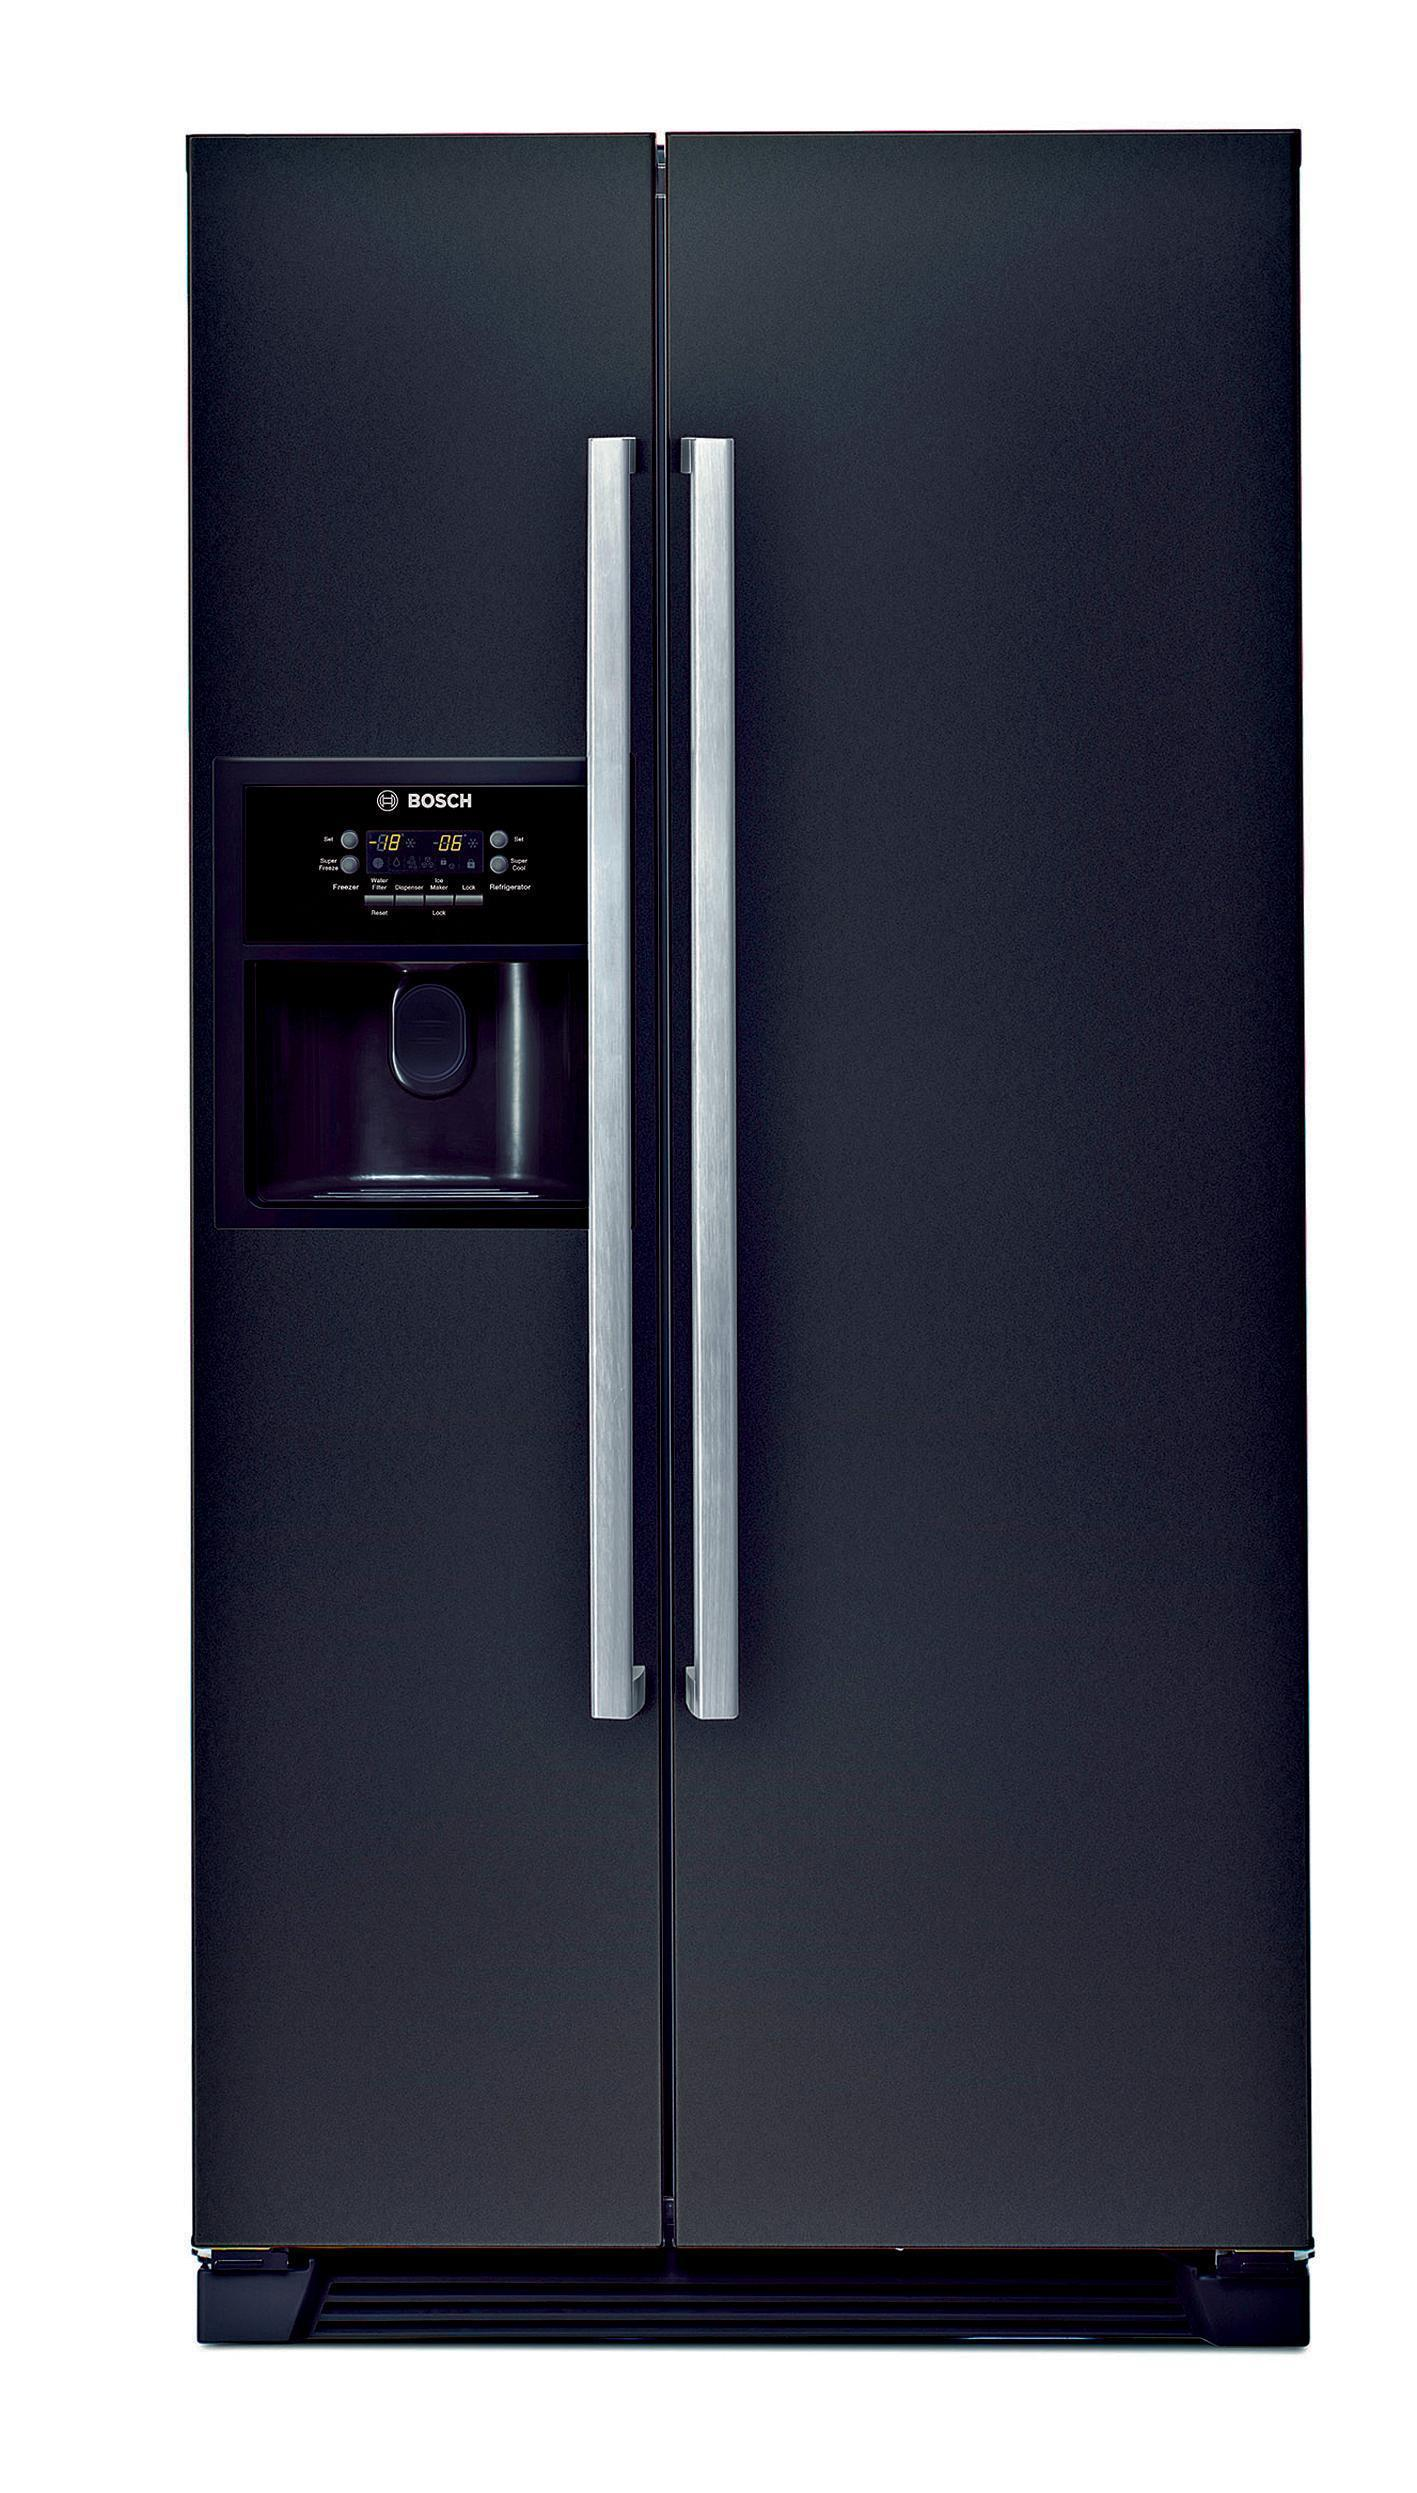 bosch kan58a55gb side by side fridge freezer black. Black Bedroom Furniture Sets. Home Design Ideas